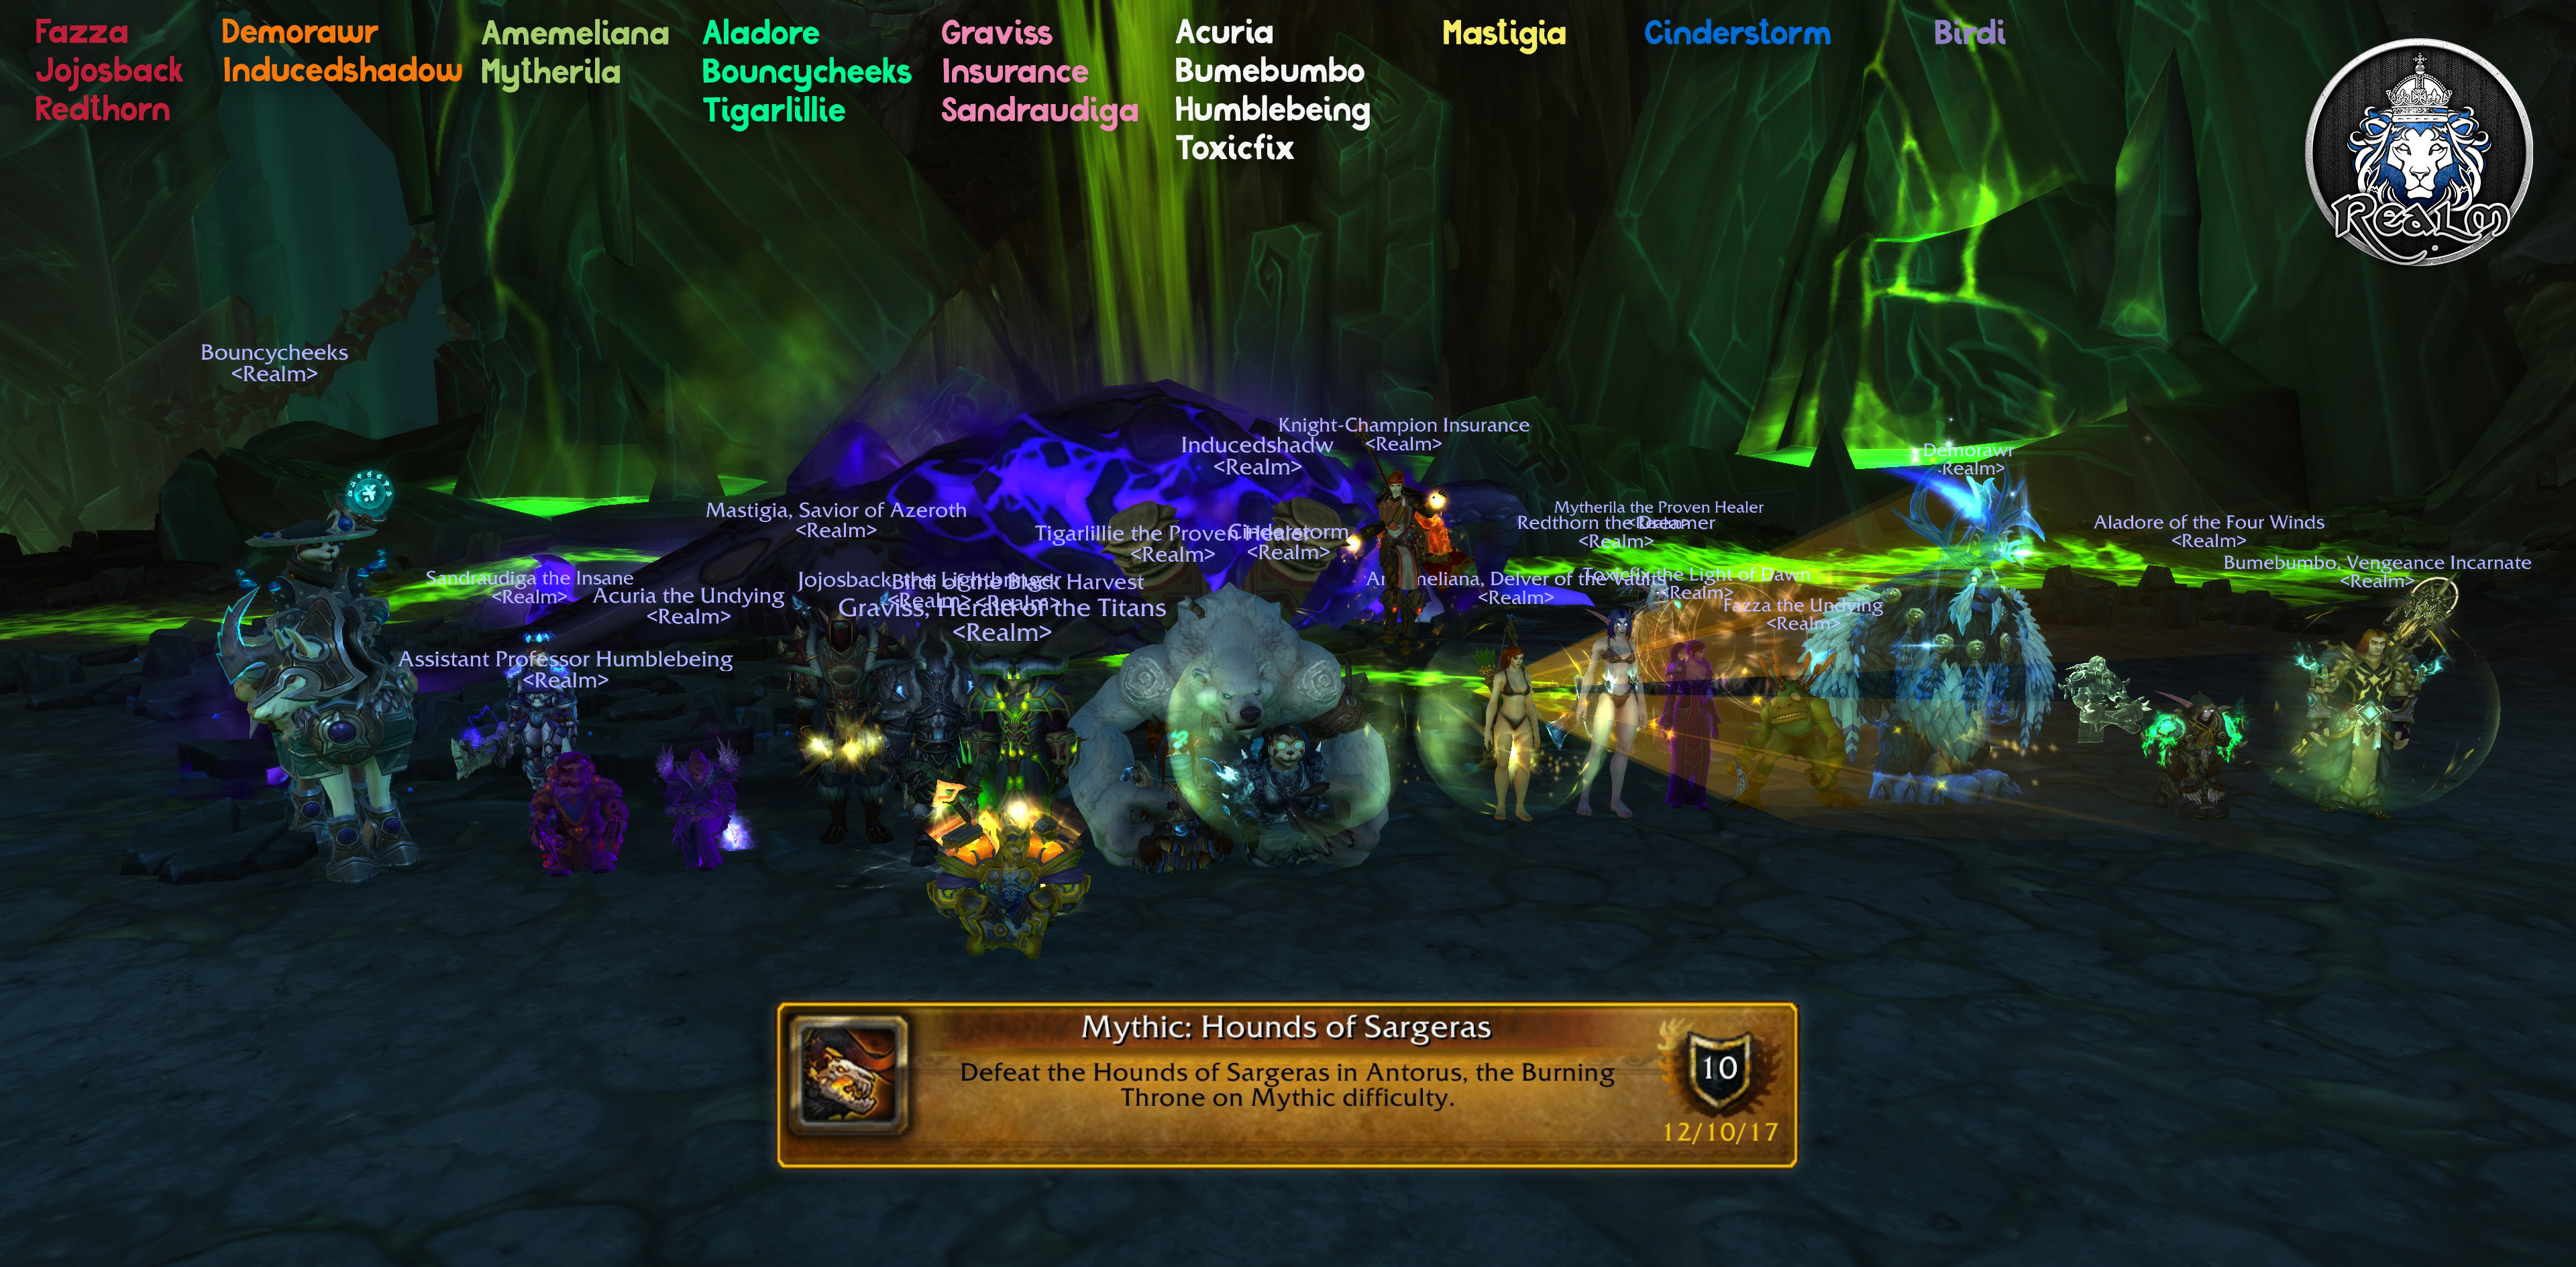 2_mythic_Hounds_of_Sargeras